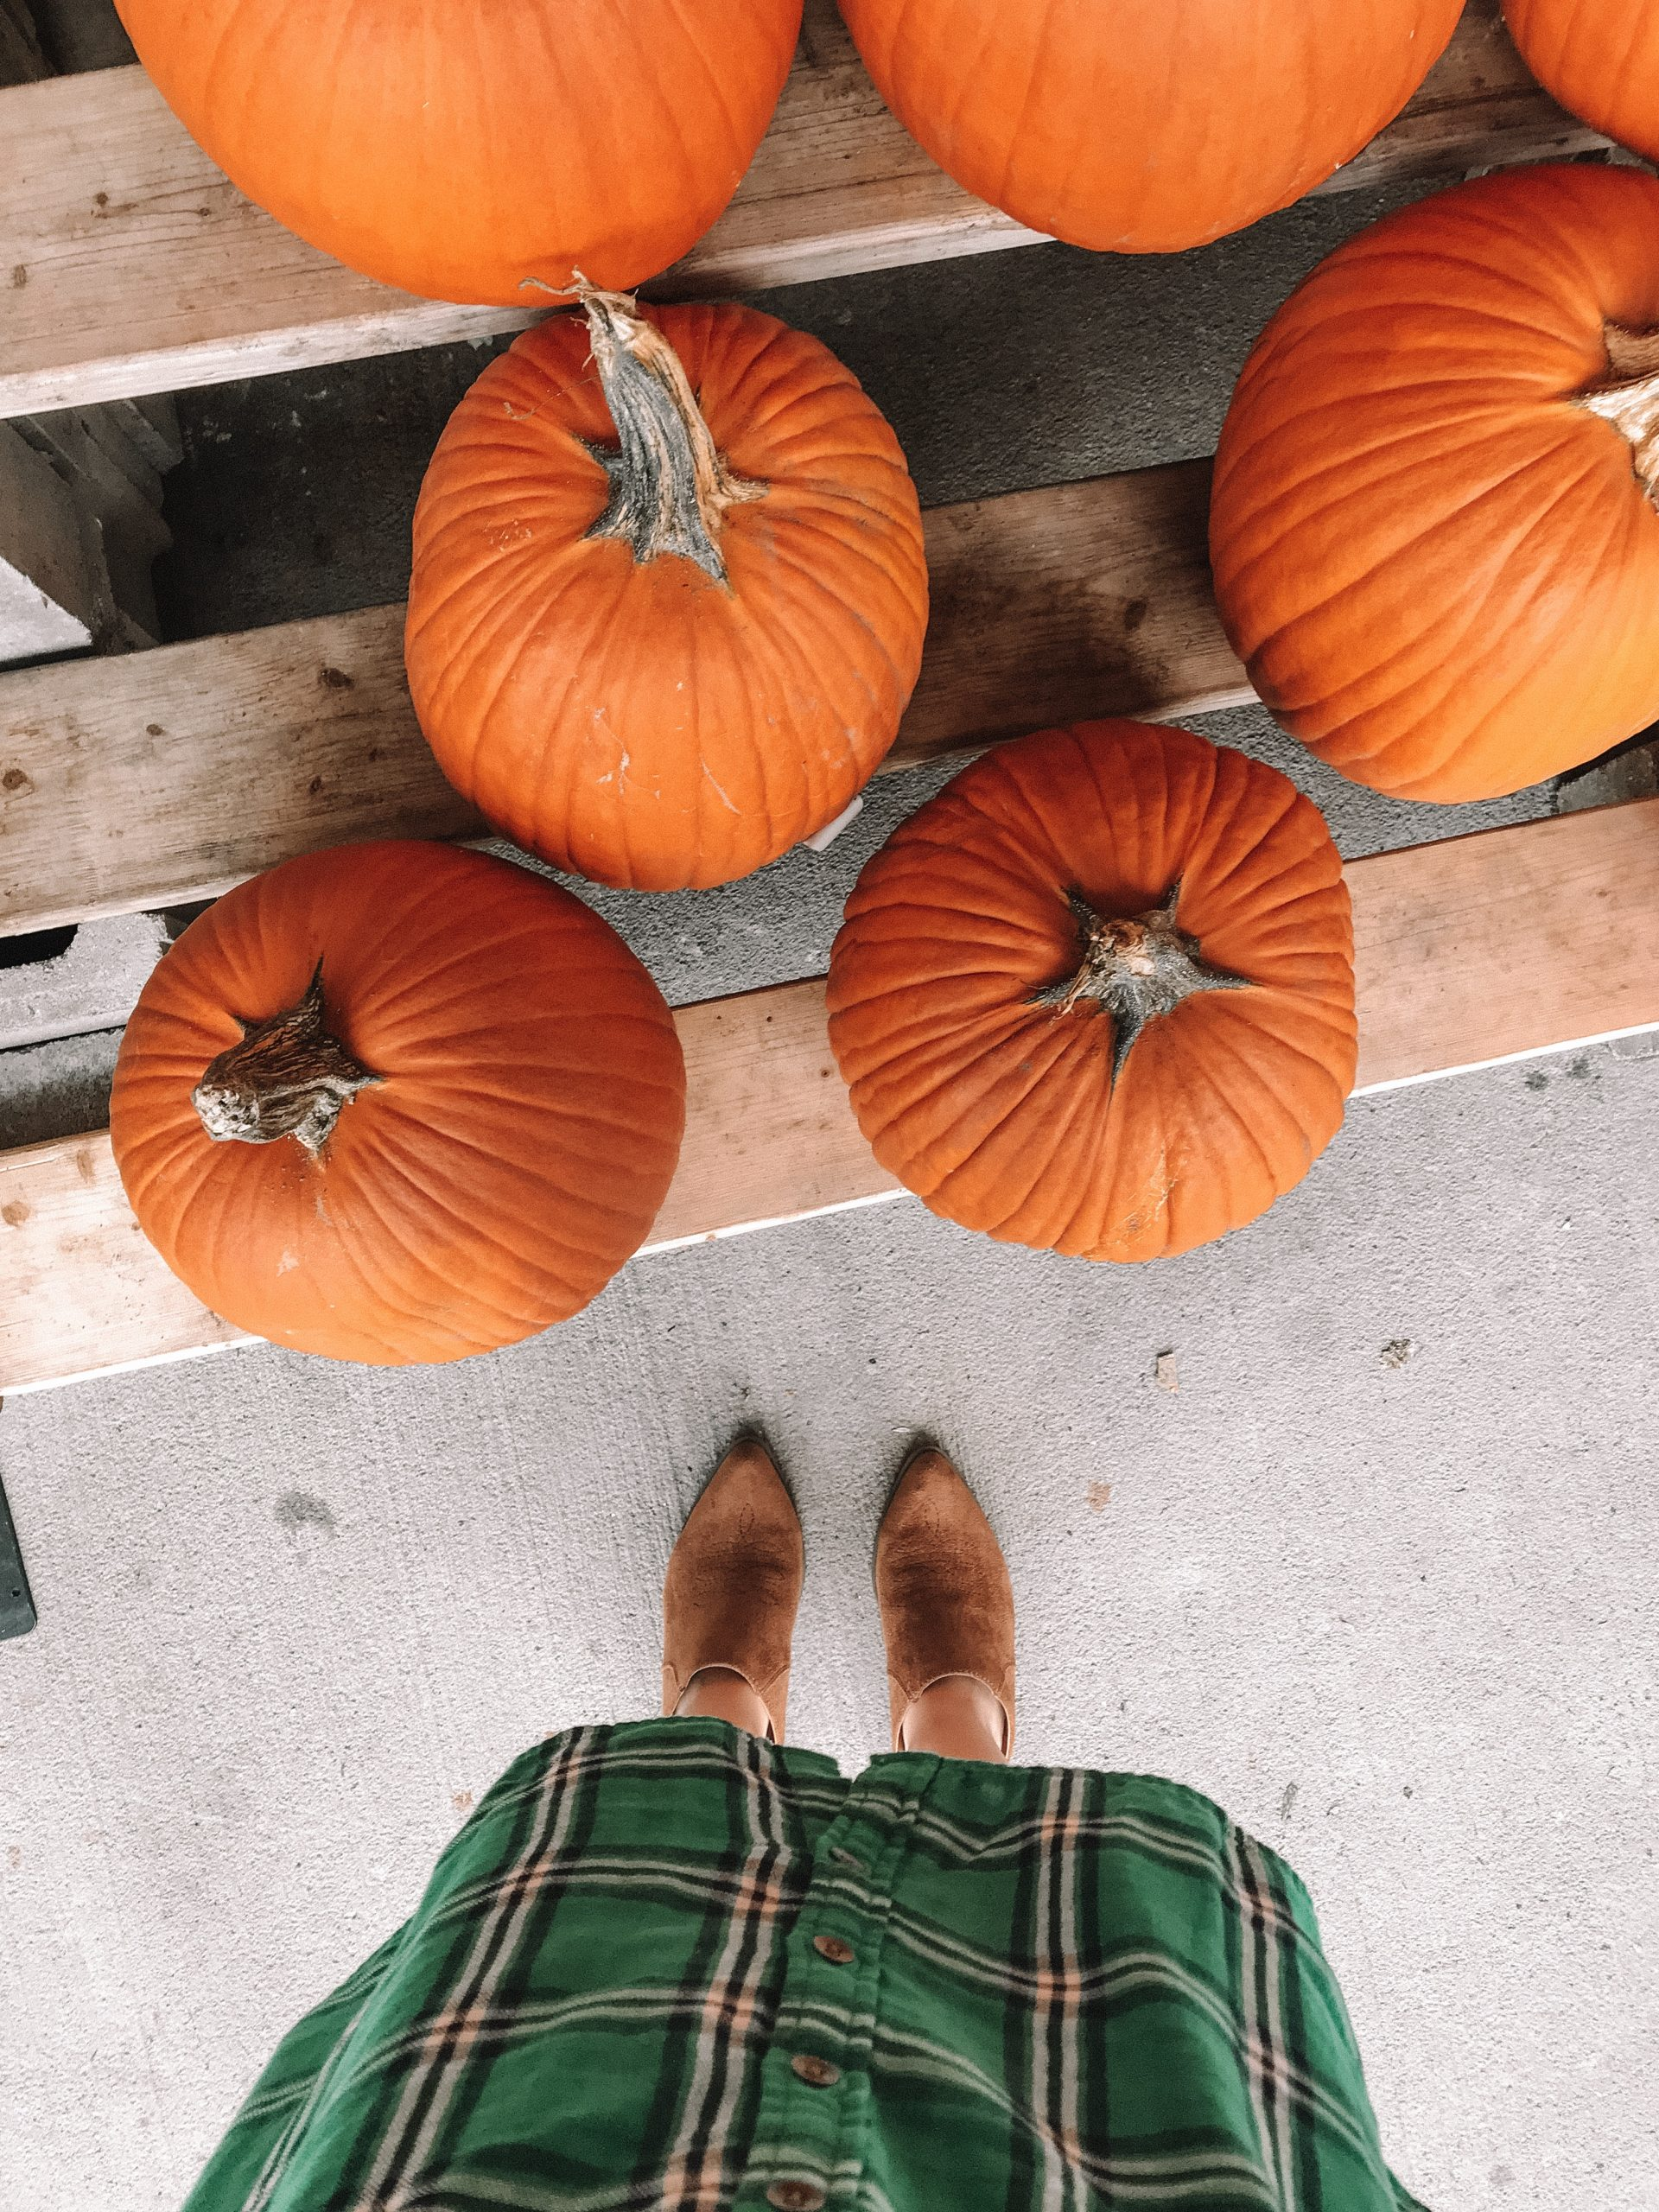 The Perfect Shoe for Fall | Hey Its Camille Grey #fall #mules #fashion